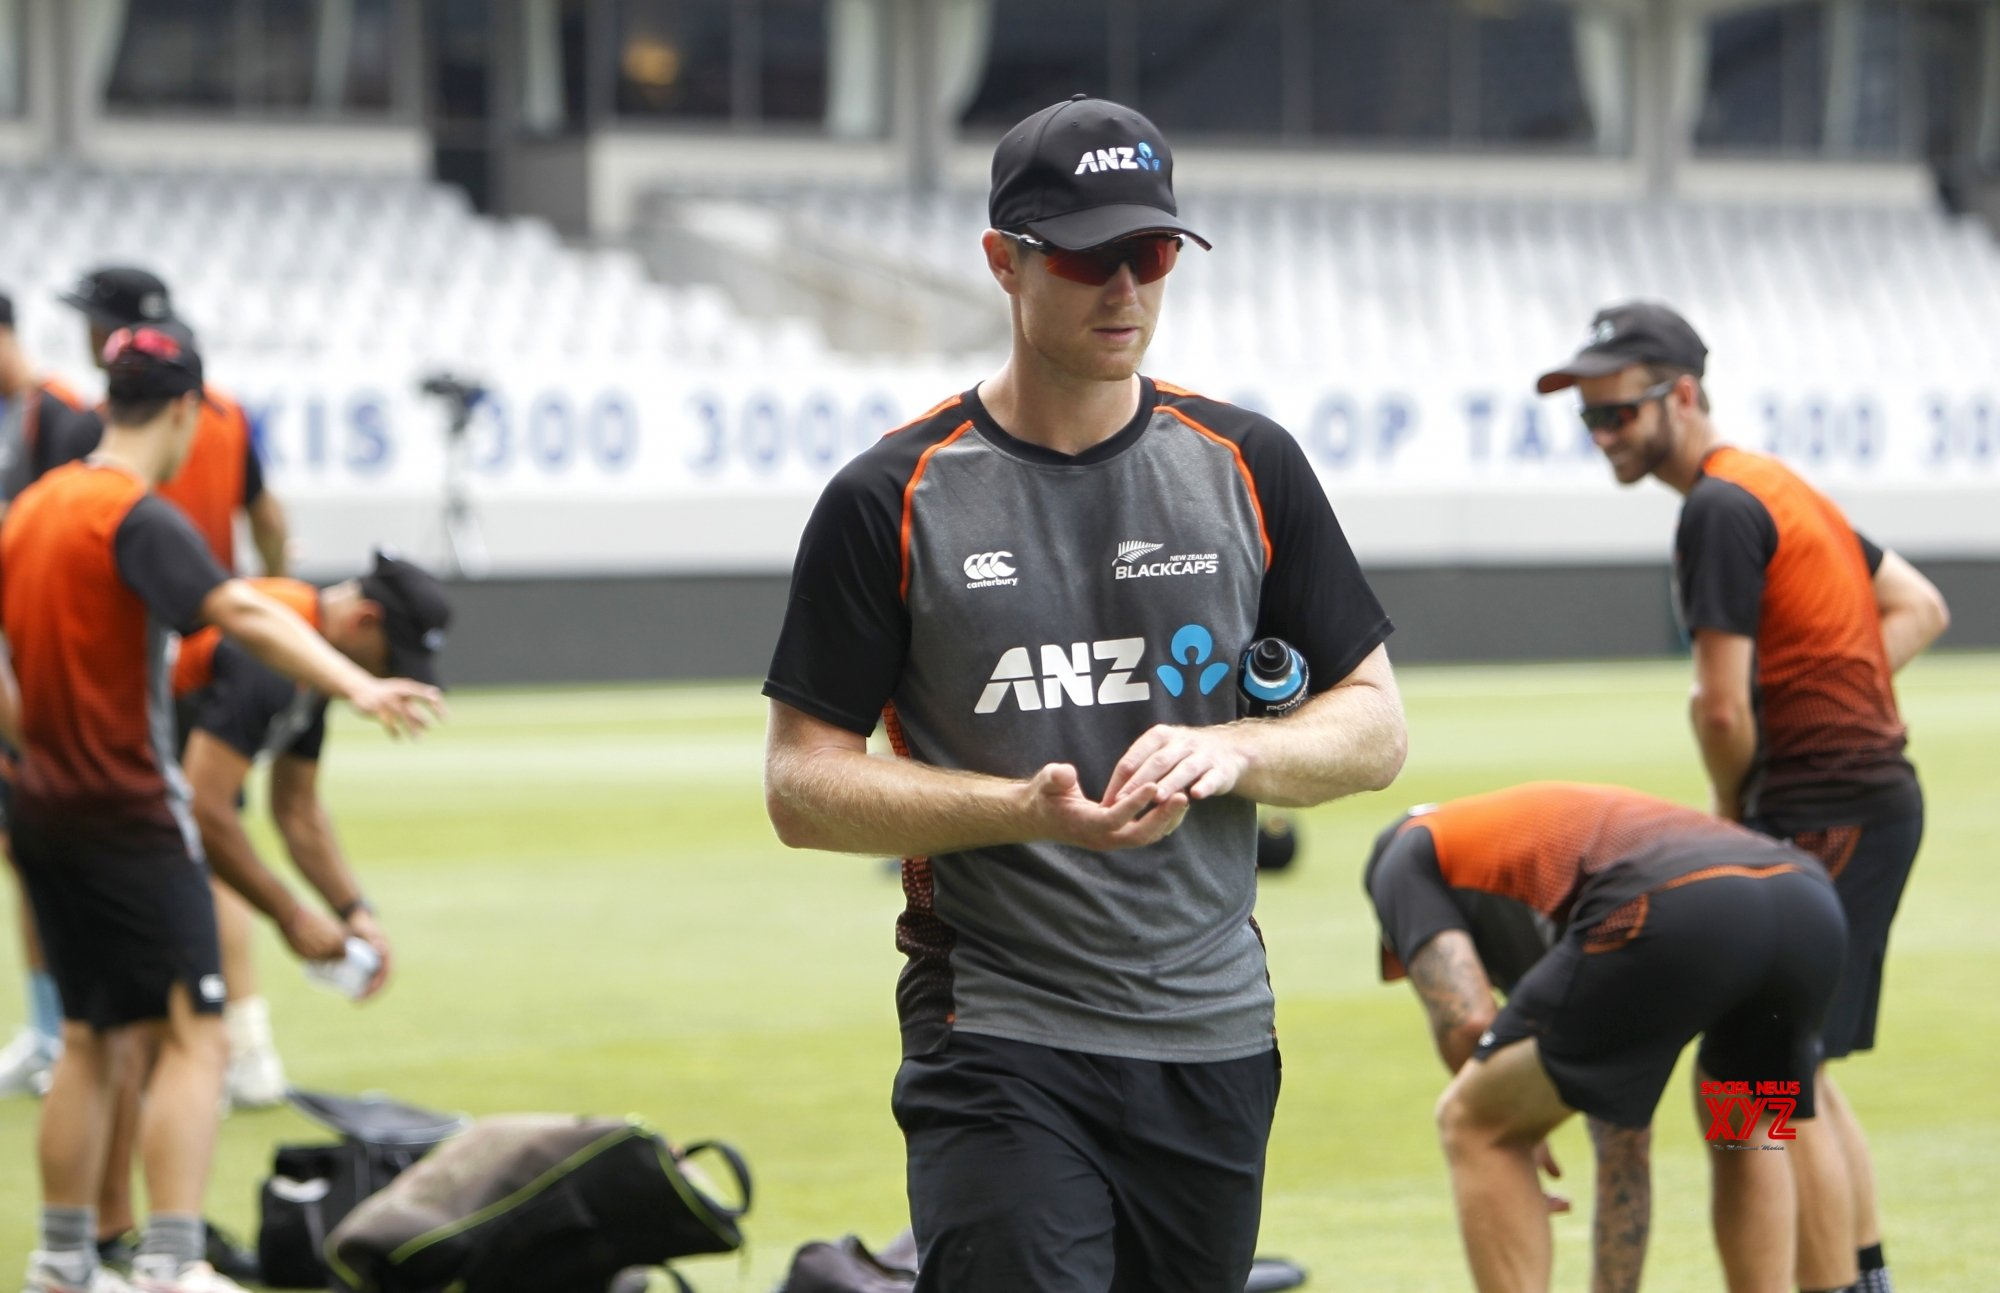 Auckland: India Vs New Zealand - 2nd ODI - New Zealand practice session #Gallery